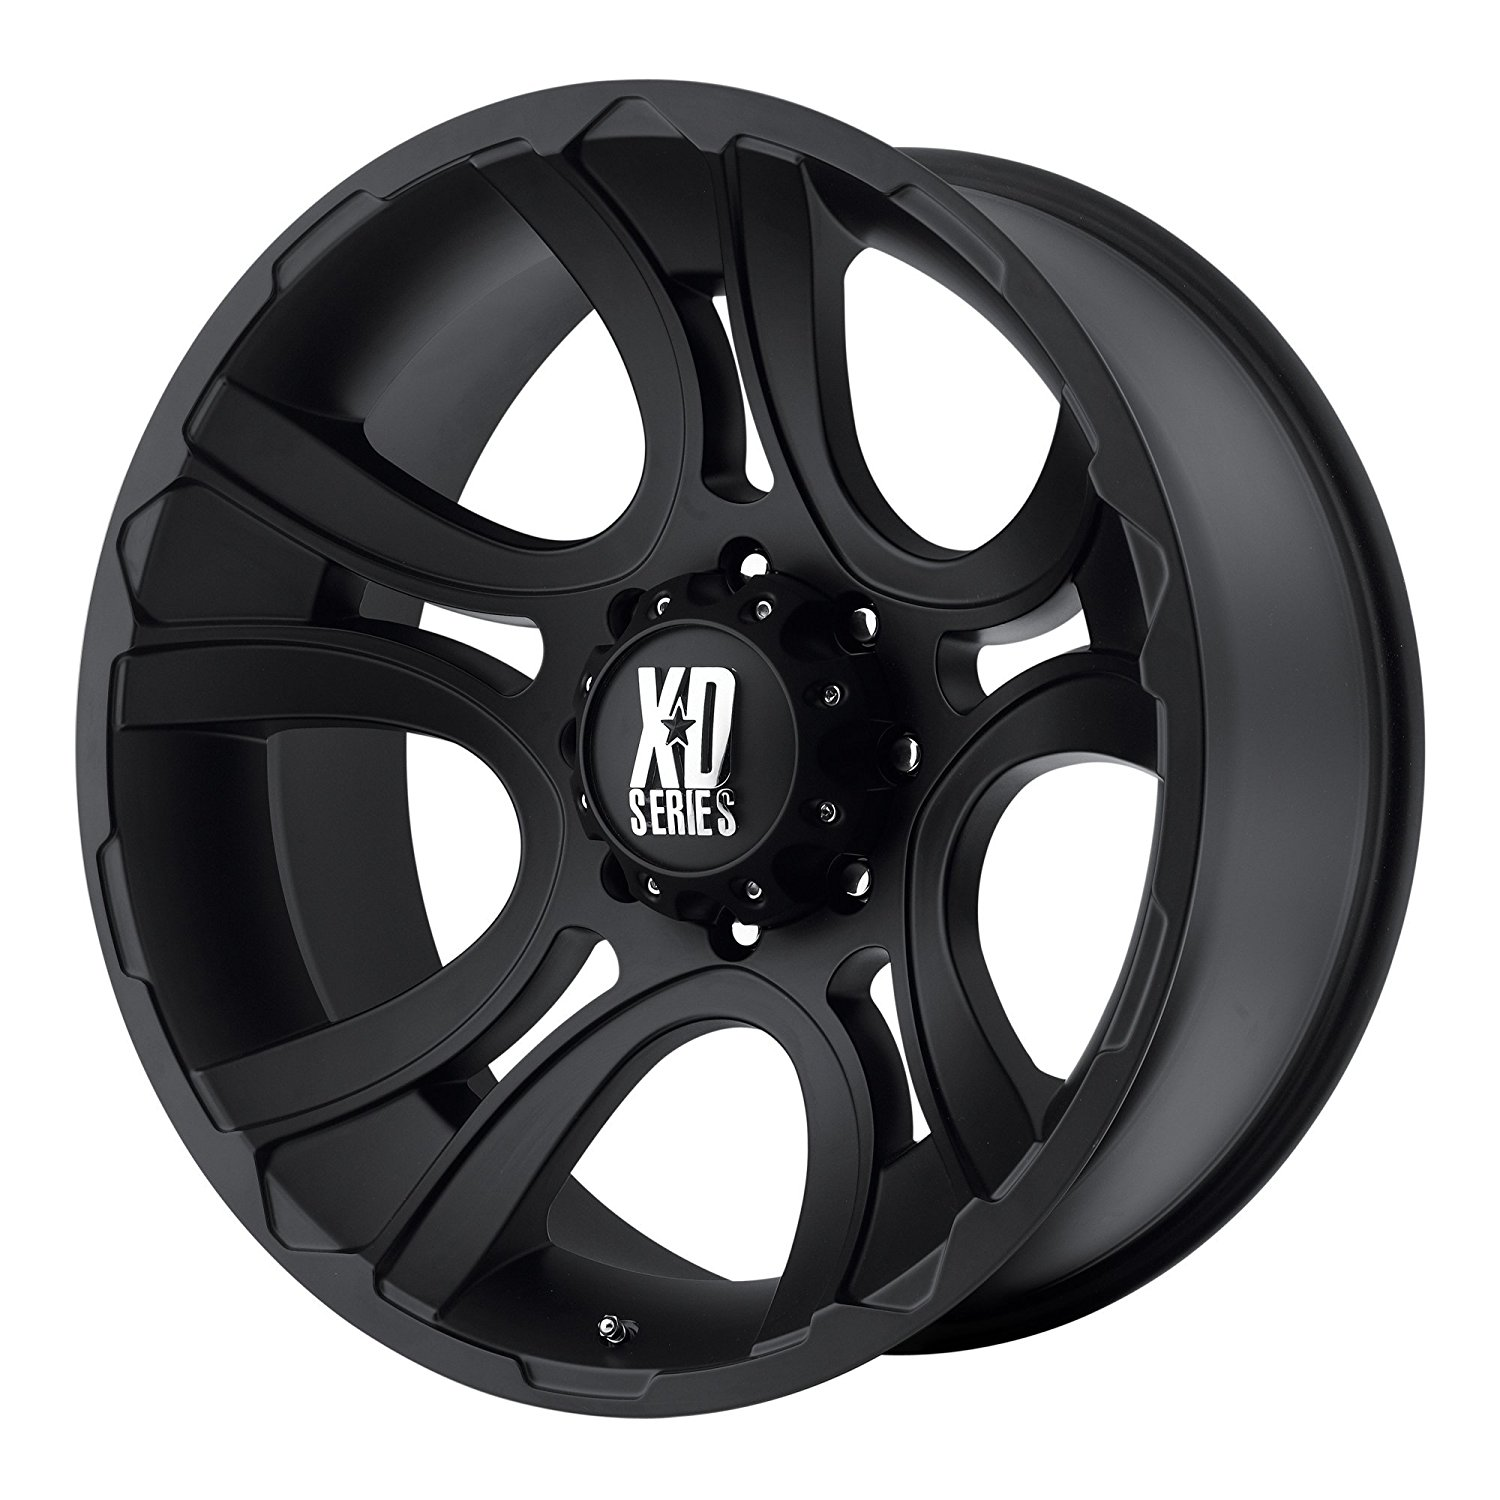 18 Inch 18x9 KMC XD SERIES wheels CRANK Matte Black wheels rims